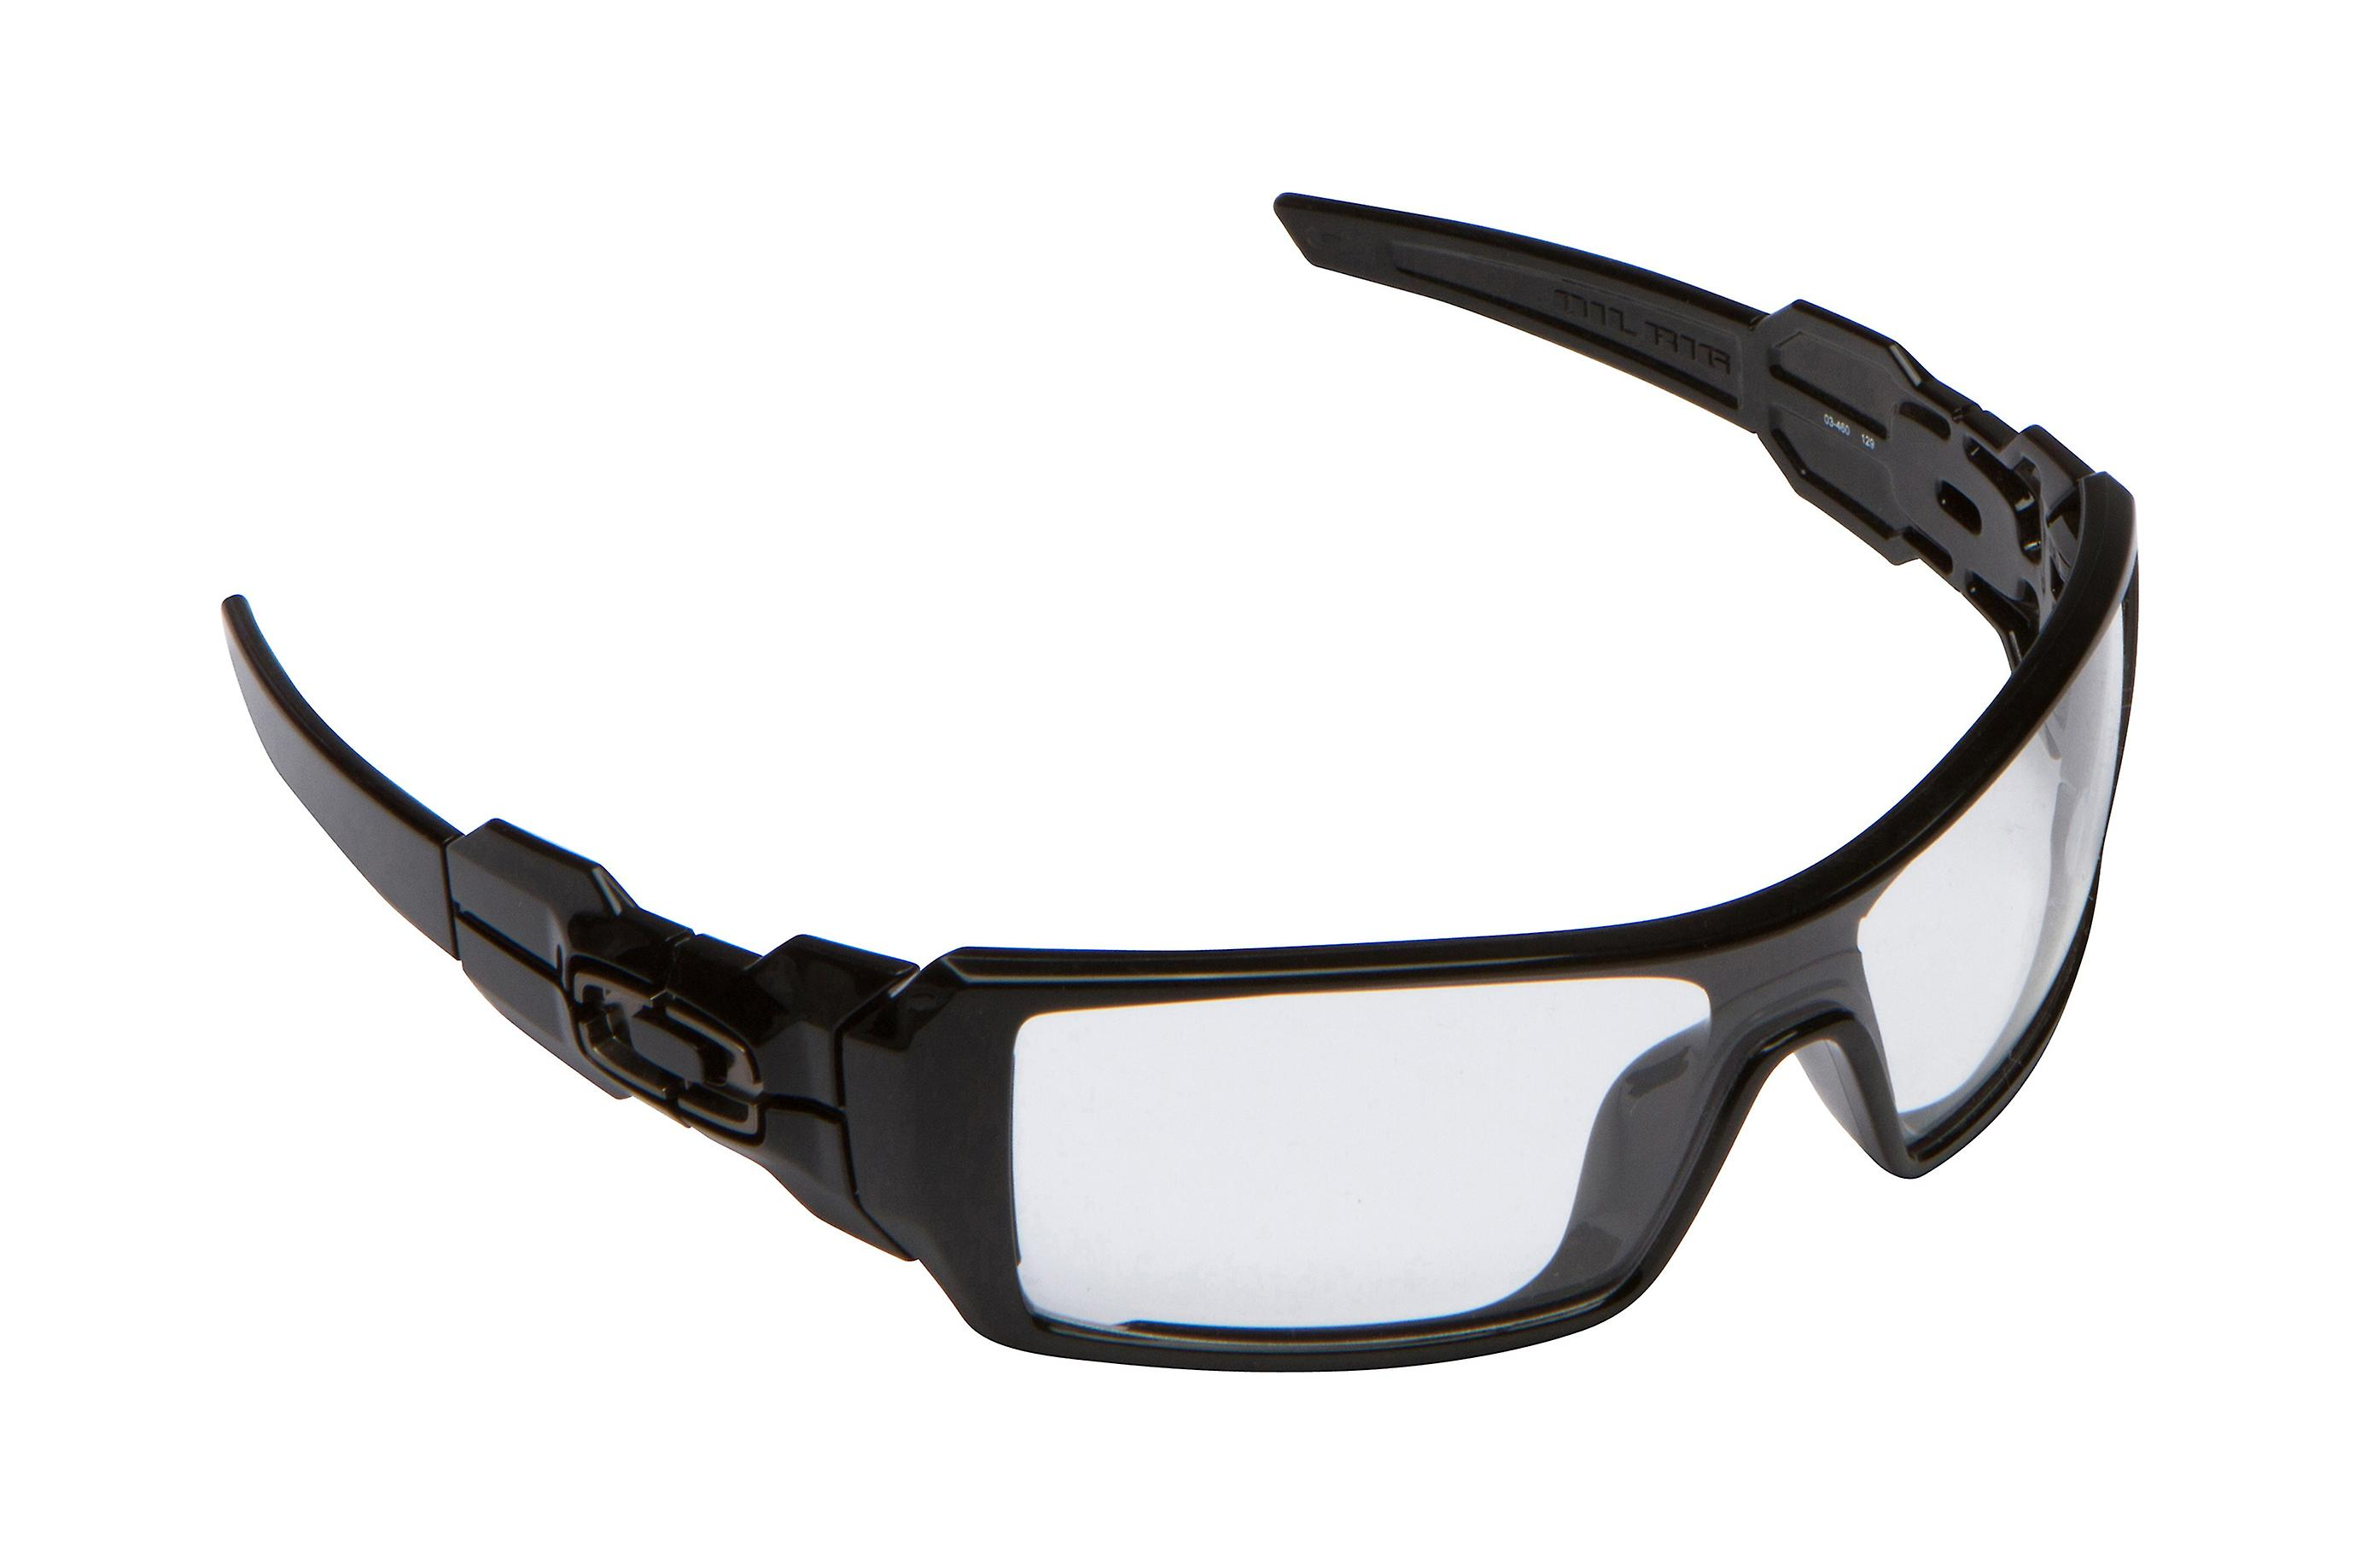 fc818e1273 Oil Rig Replacement Lenses Crystal Clear by SEEK fits OAKLEY Sunglasses